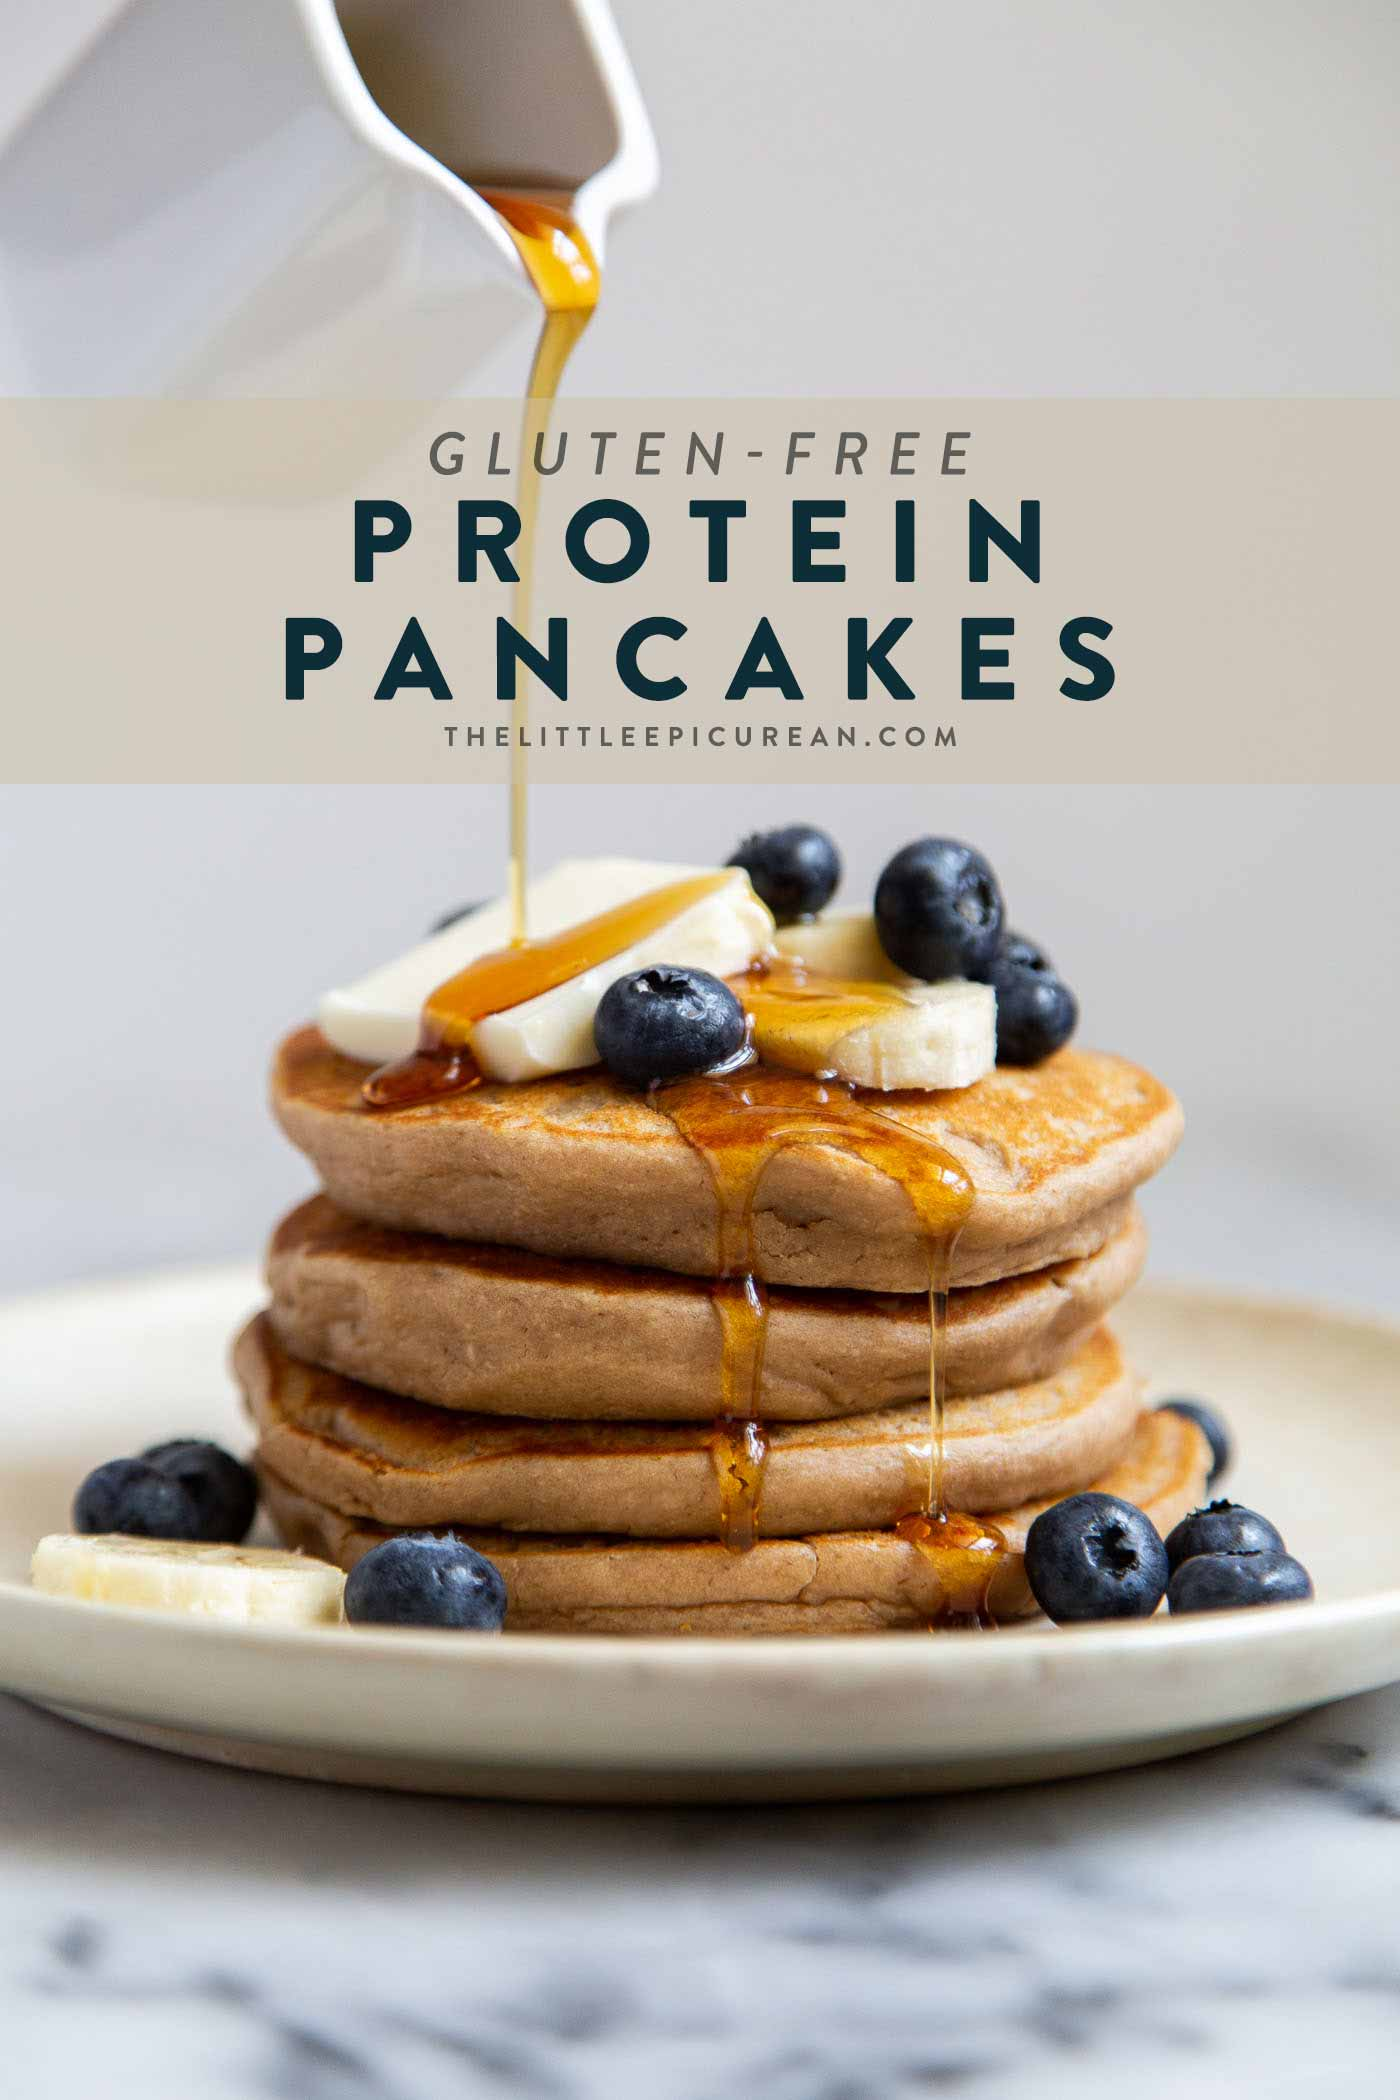 Gluten-free protein pancakes made with oat flour and protein powder